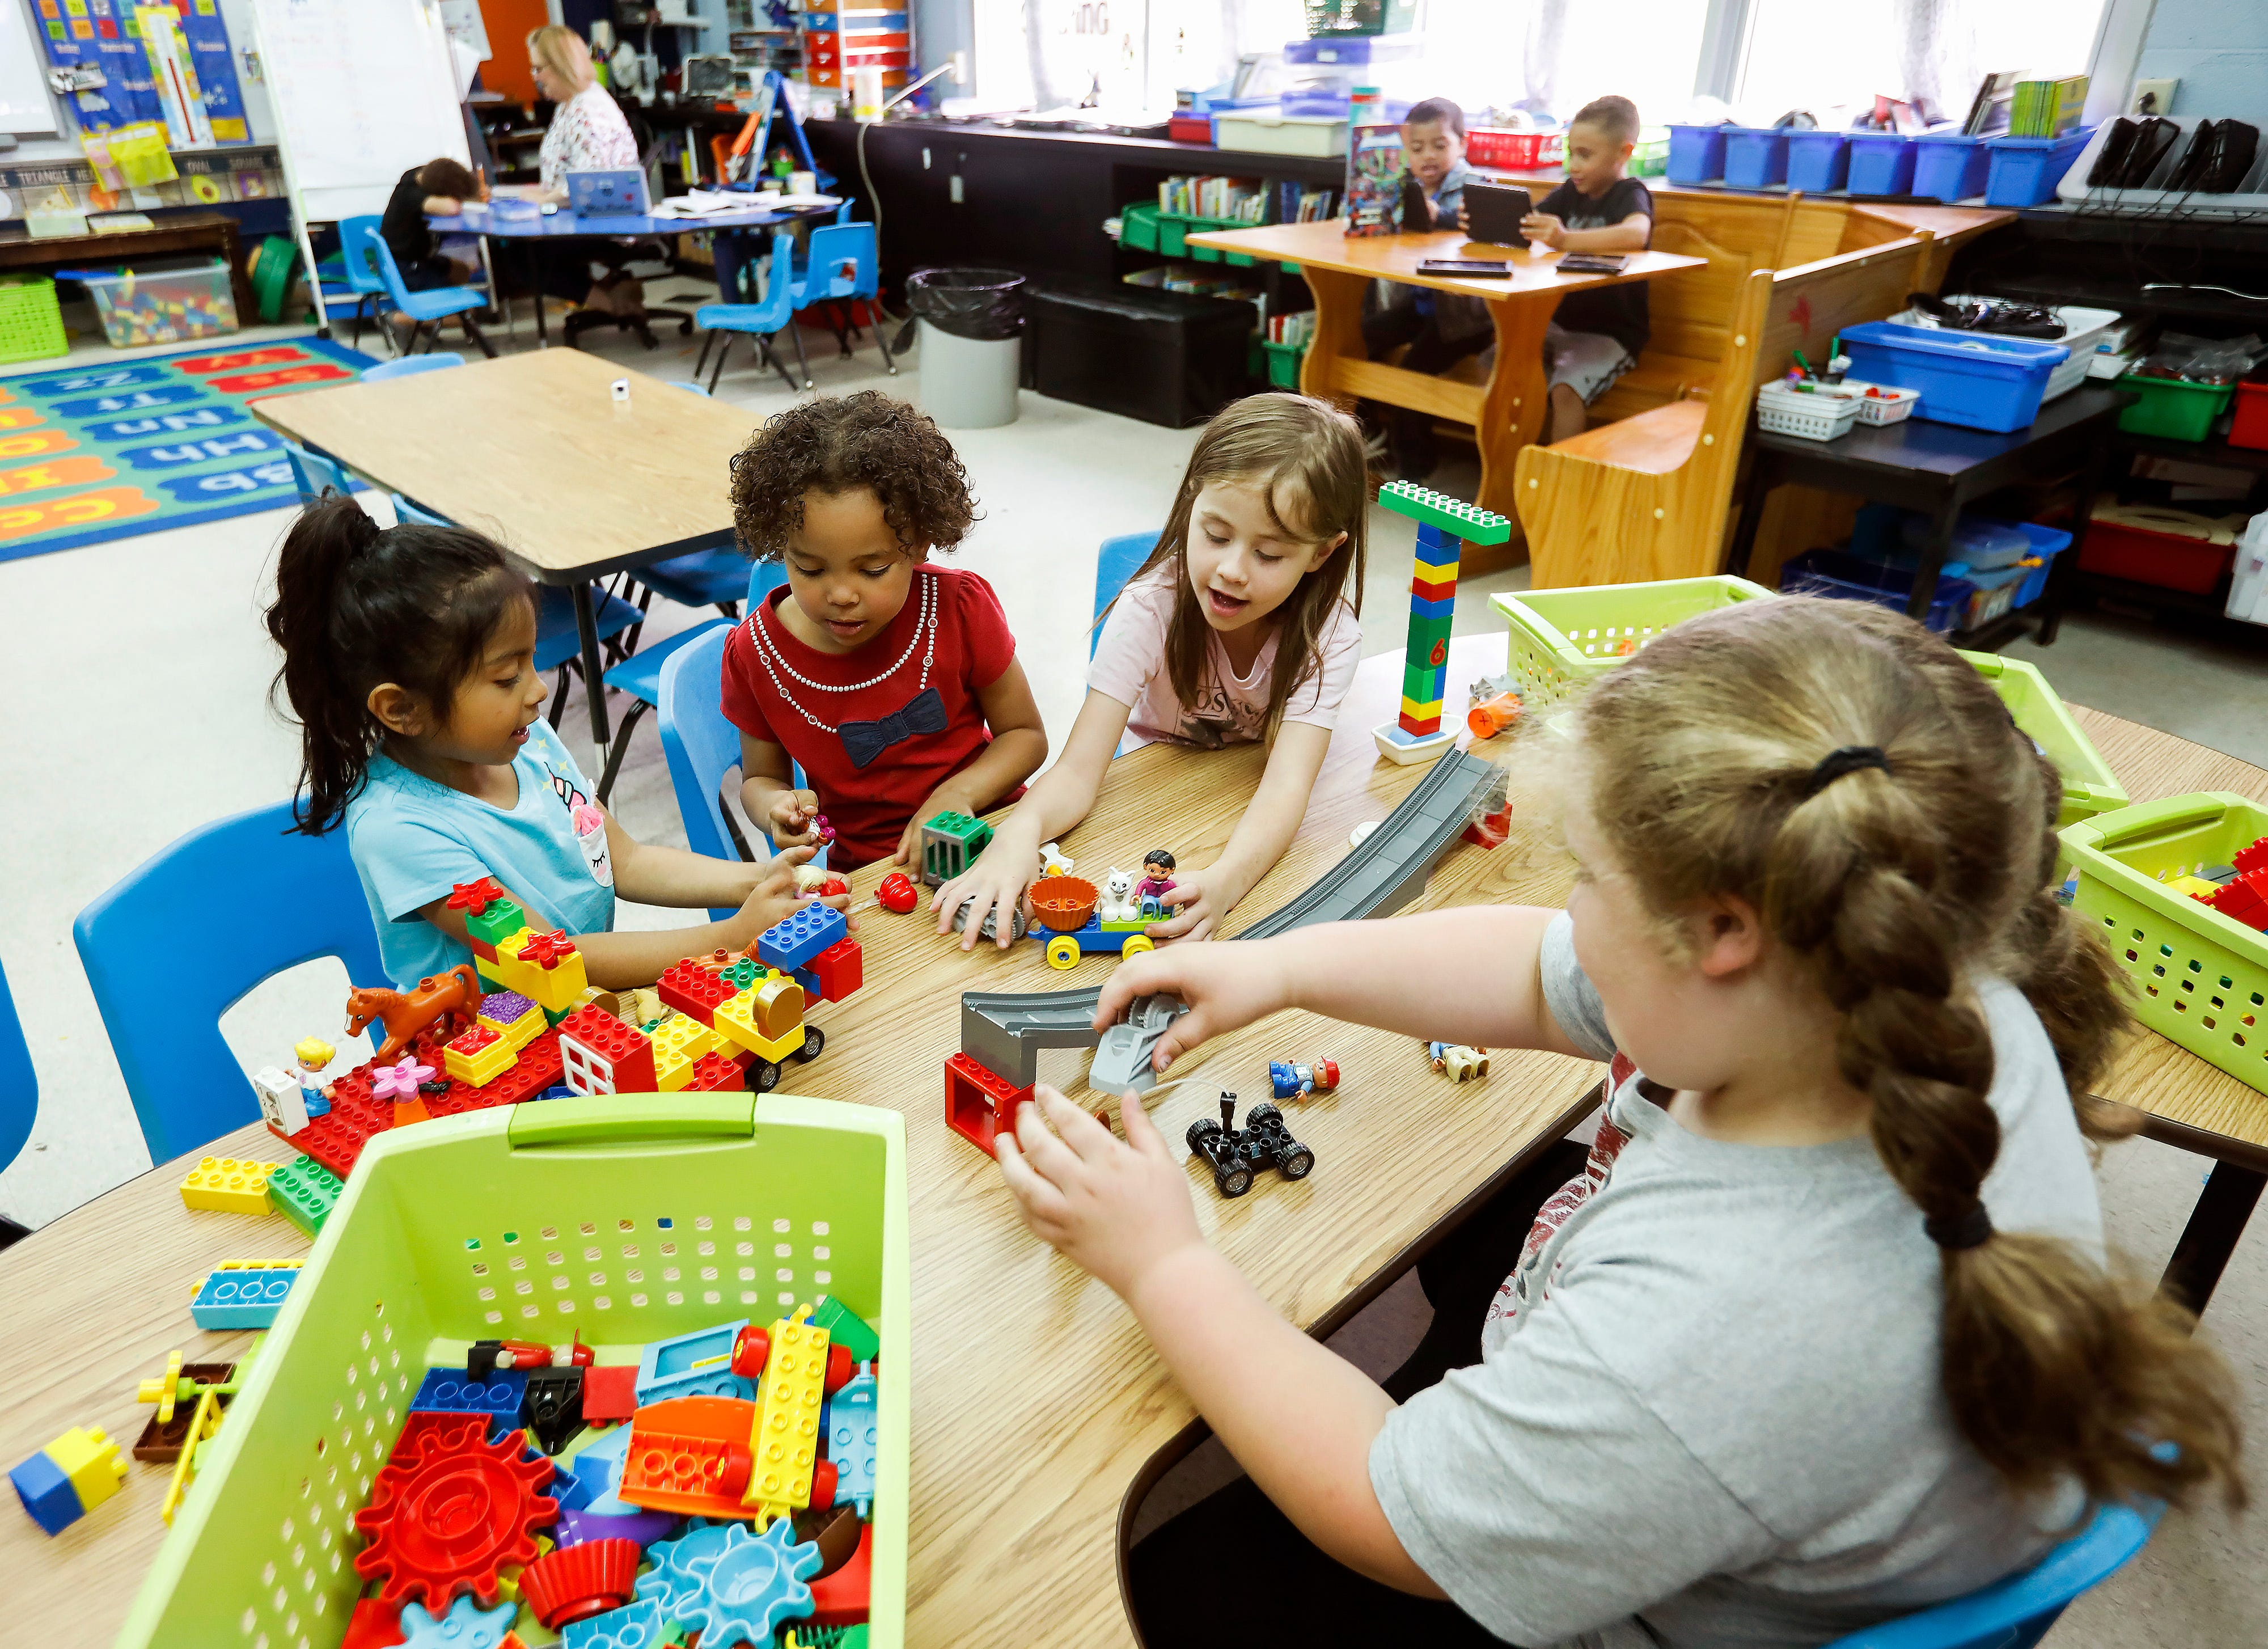 From left, Adriana Campos, Carla Gibson-Thompson, Taylor Richards, and Jaiden Robertson play with Legos in Michelle Pickett's kindergarten class at Cowden Elementary School on Tuesday, April 23, 2019.